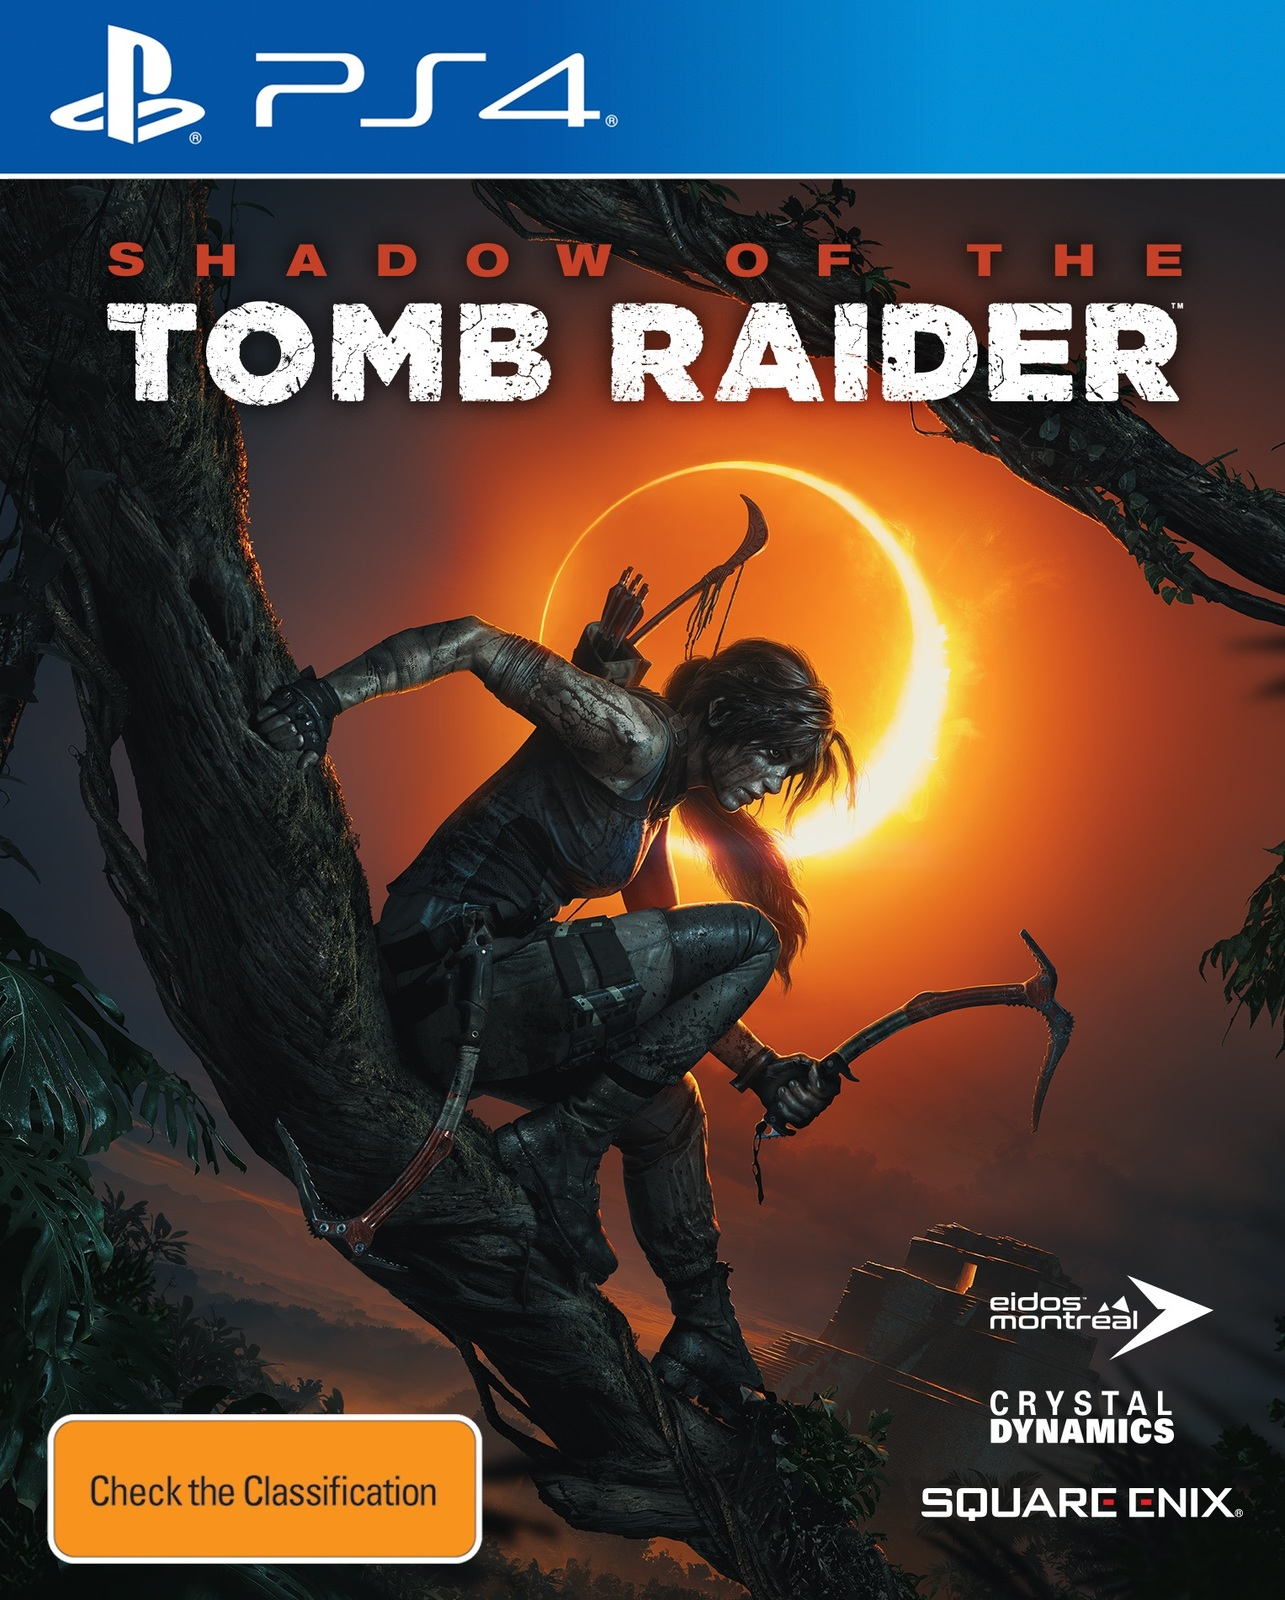 Shadow of the Tomb Raider for PS4 image